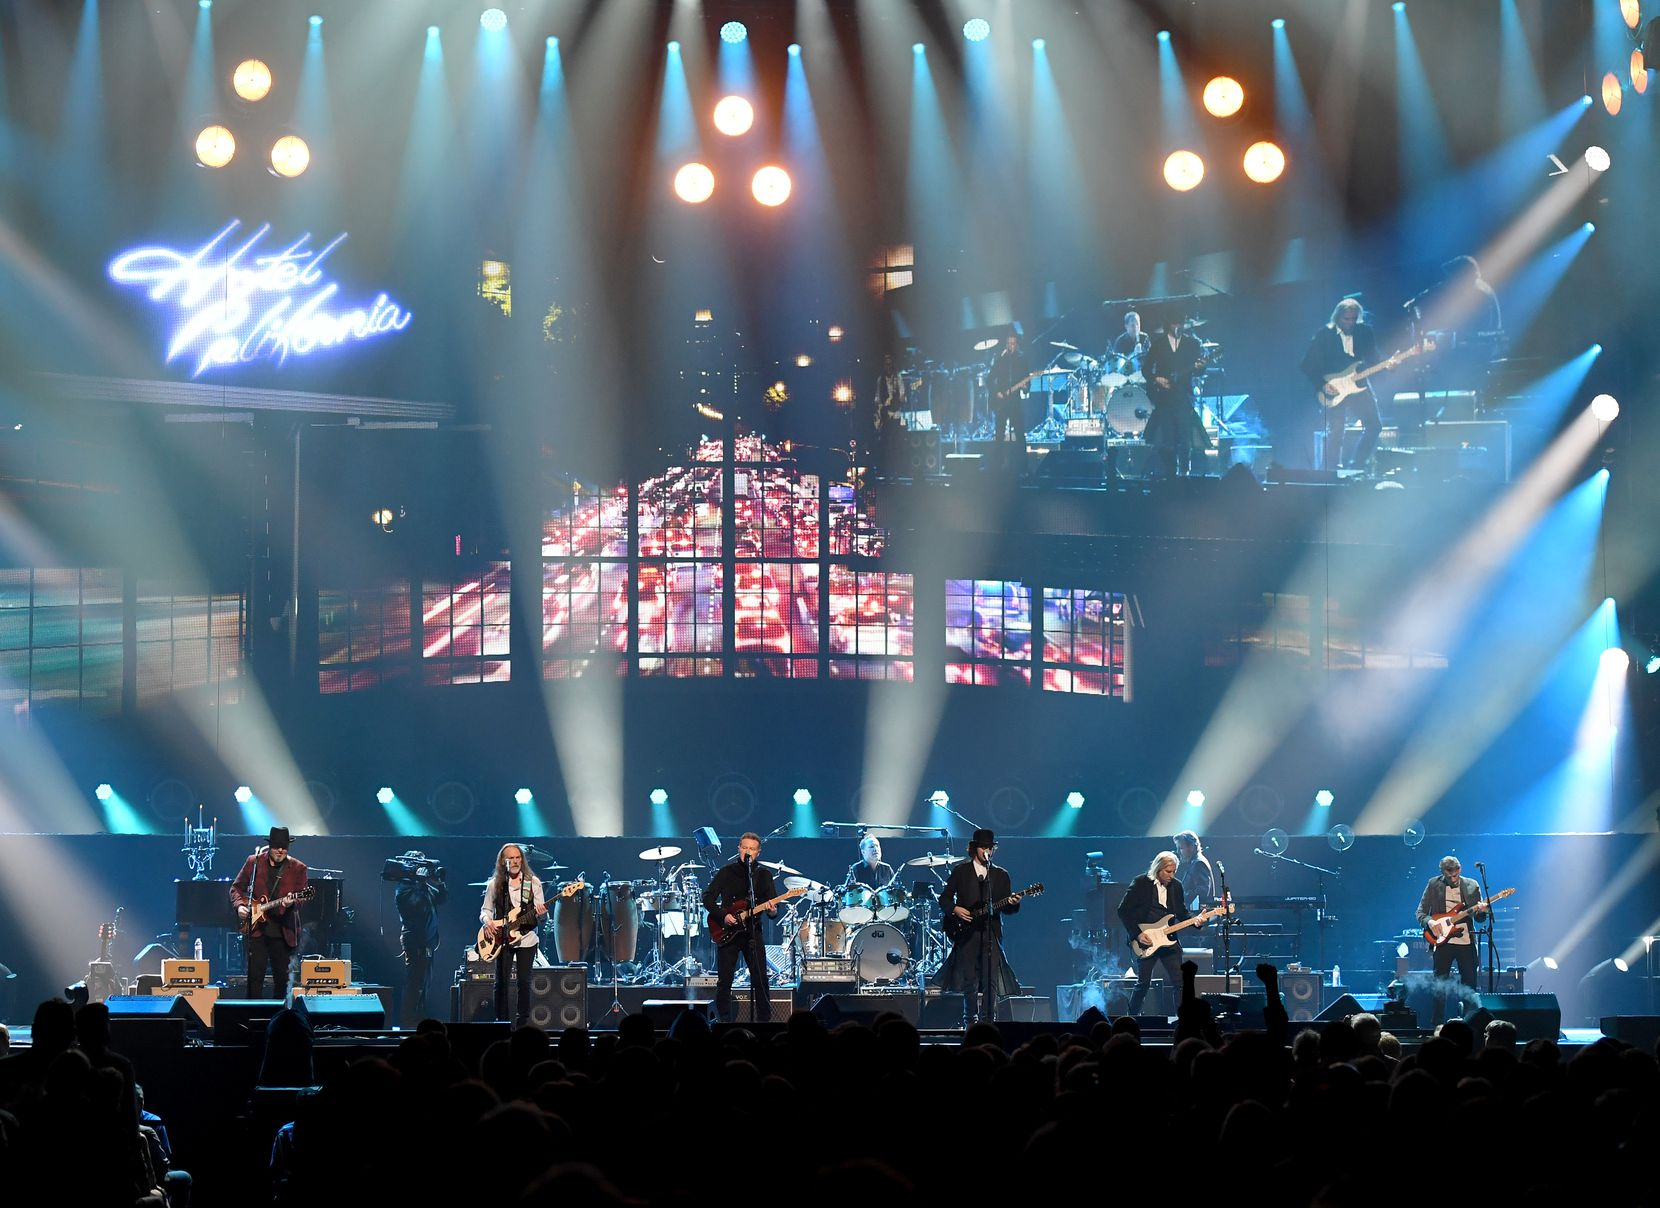 From left to right, Vince Gill, Timothy B. Schmit, Don Henley, Scott F. Crago, Deacon Frey, Joe Walsh and Steuart Smith of the Eagles perform at MGM Grand Garden Arena on Sept. 27, 2019 in Las Vegas, Nevada.